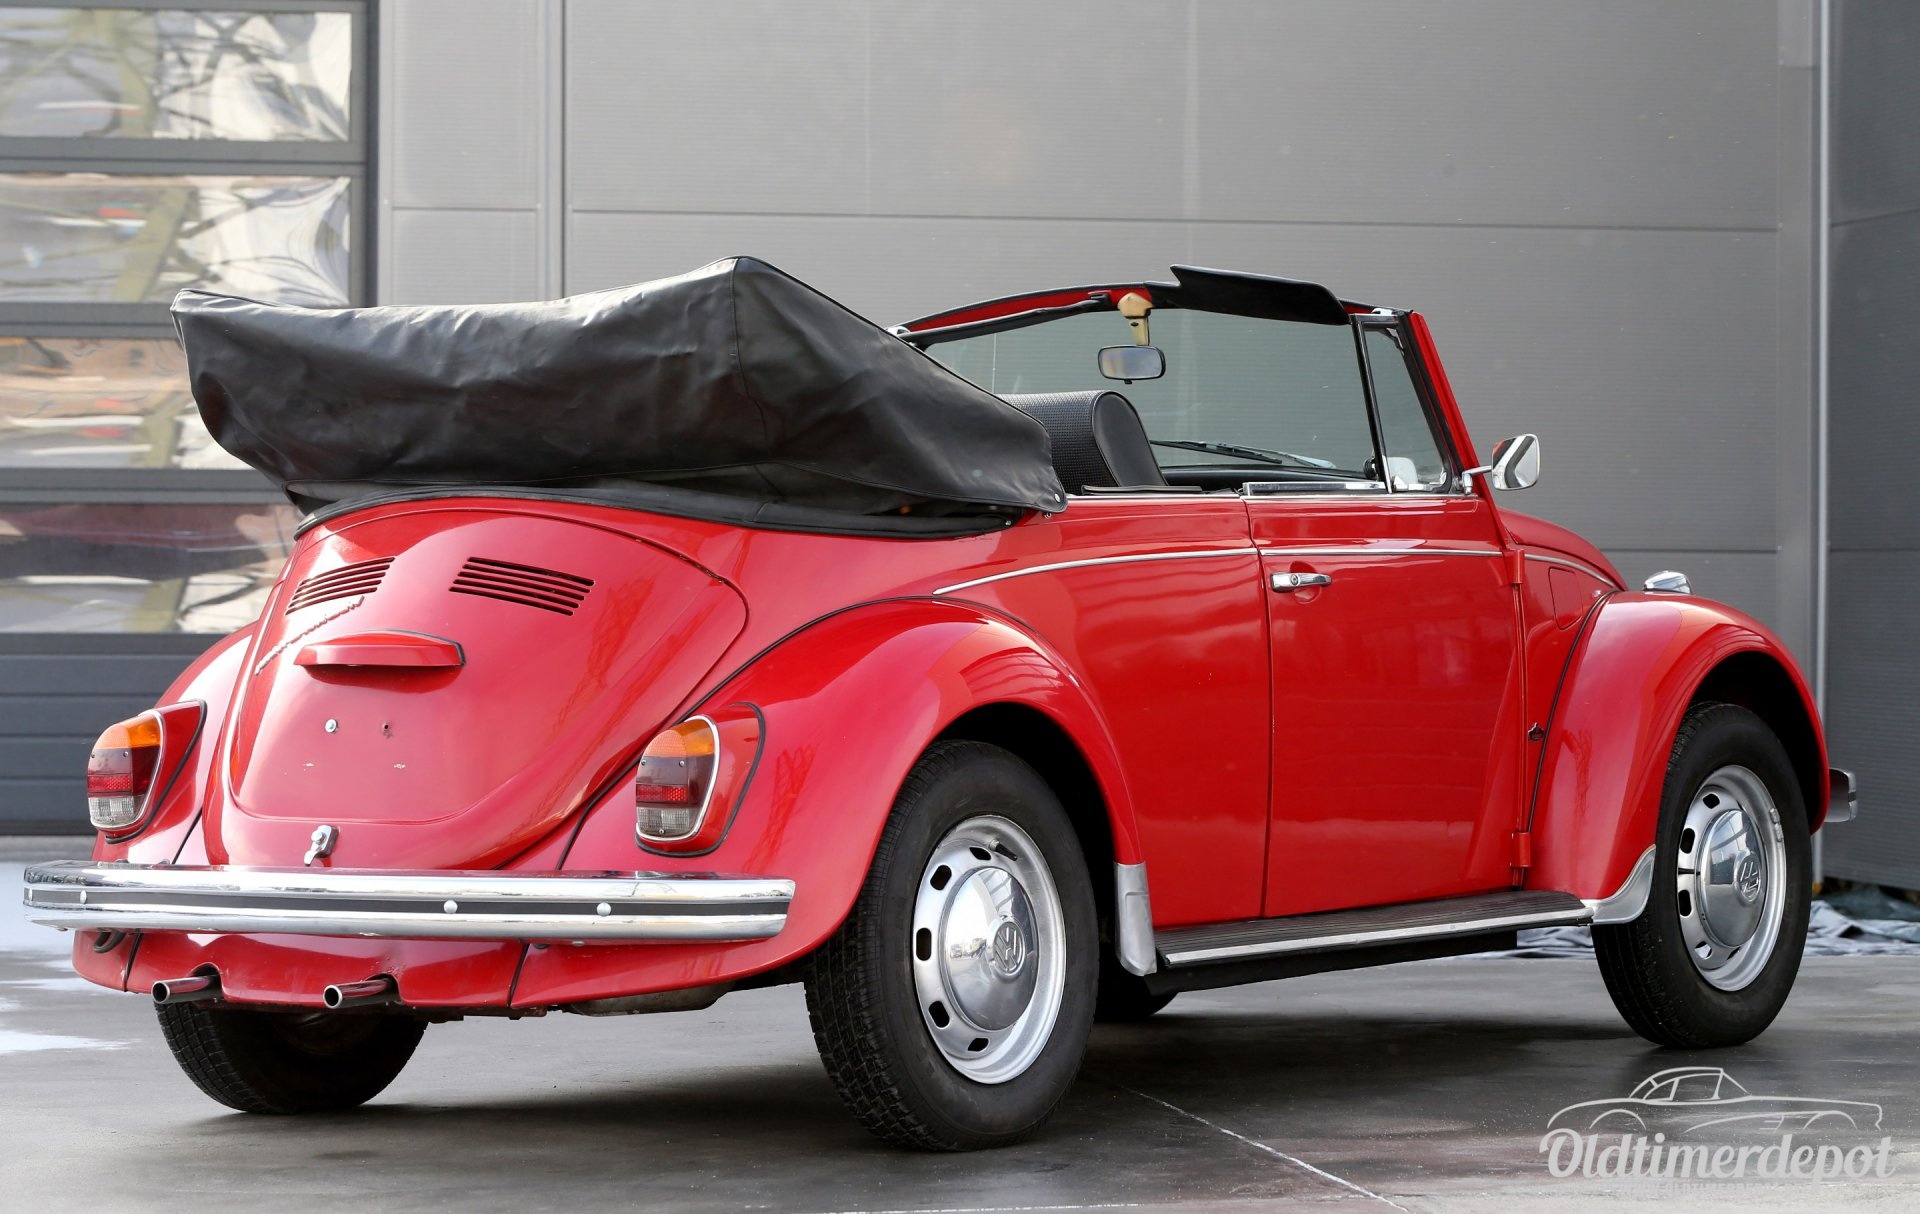 oldtimerdepot reutlingen vw k fer cabrio rot. Black Bedroom Furniture Sets. Home Design Ideas